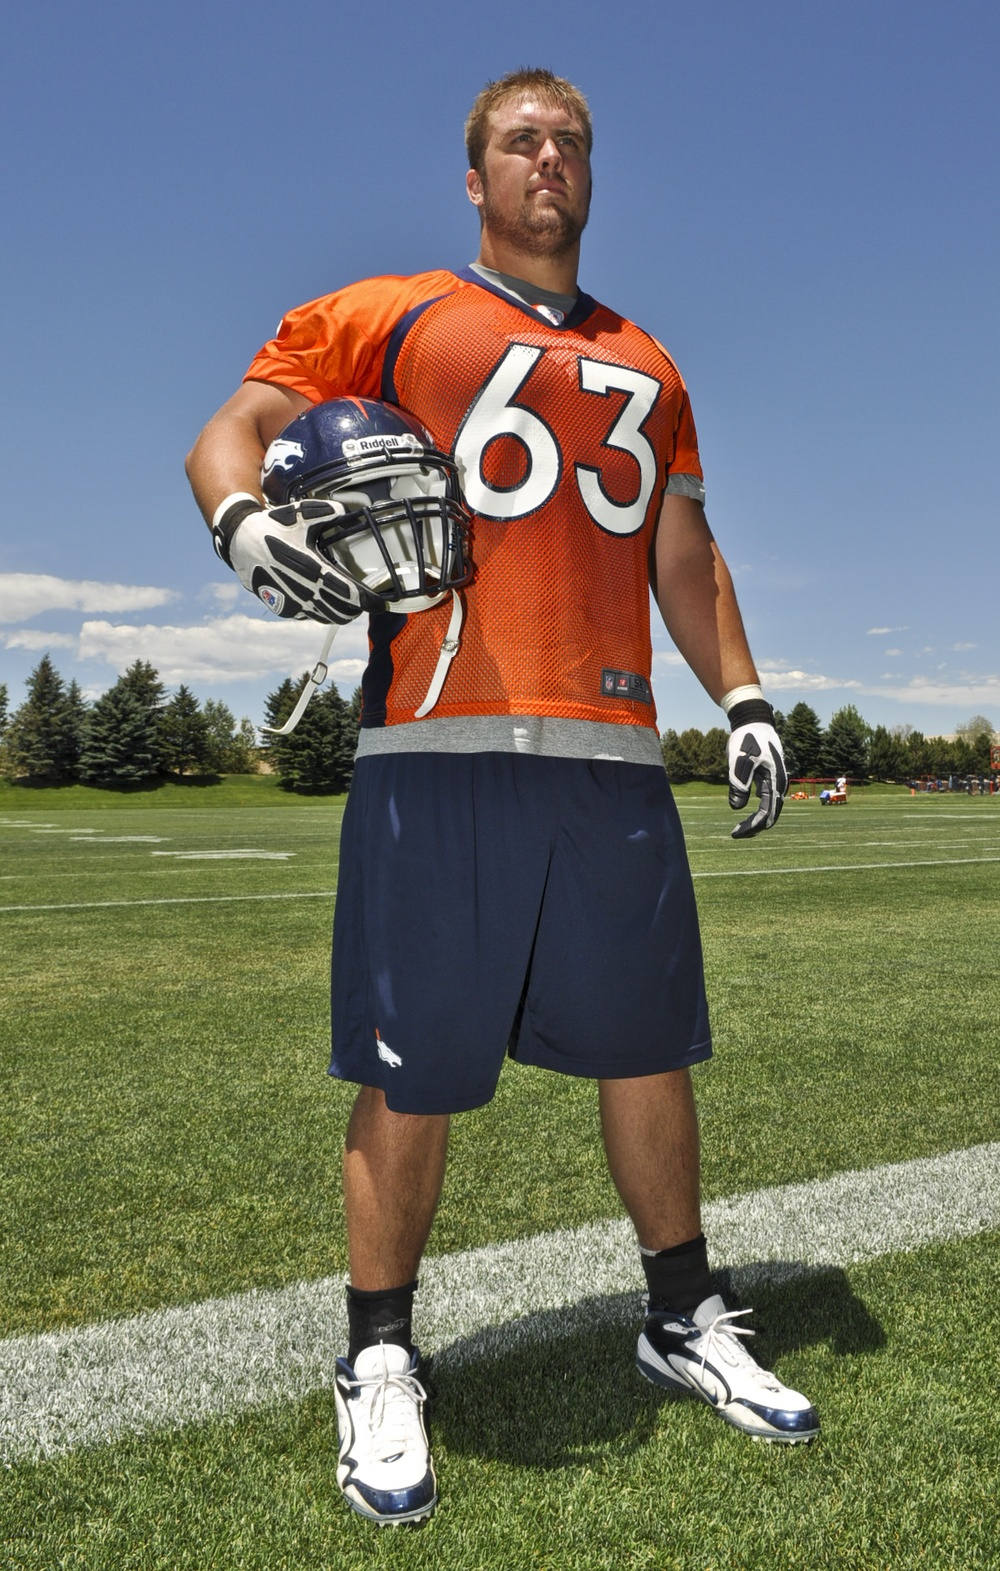 Air Force lieutenant finishes Broncos mini-camp, continues to follow dream